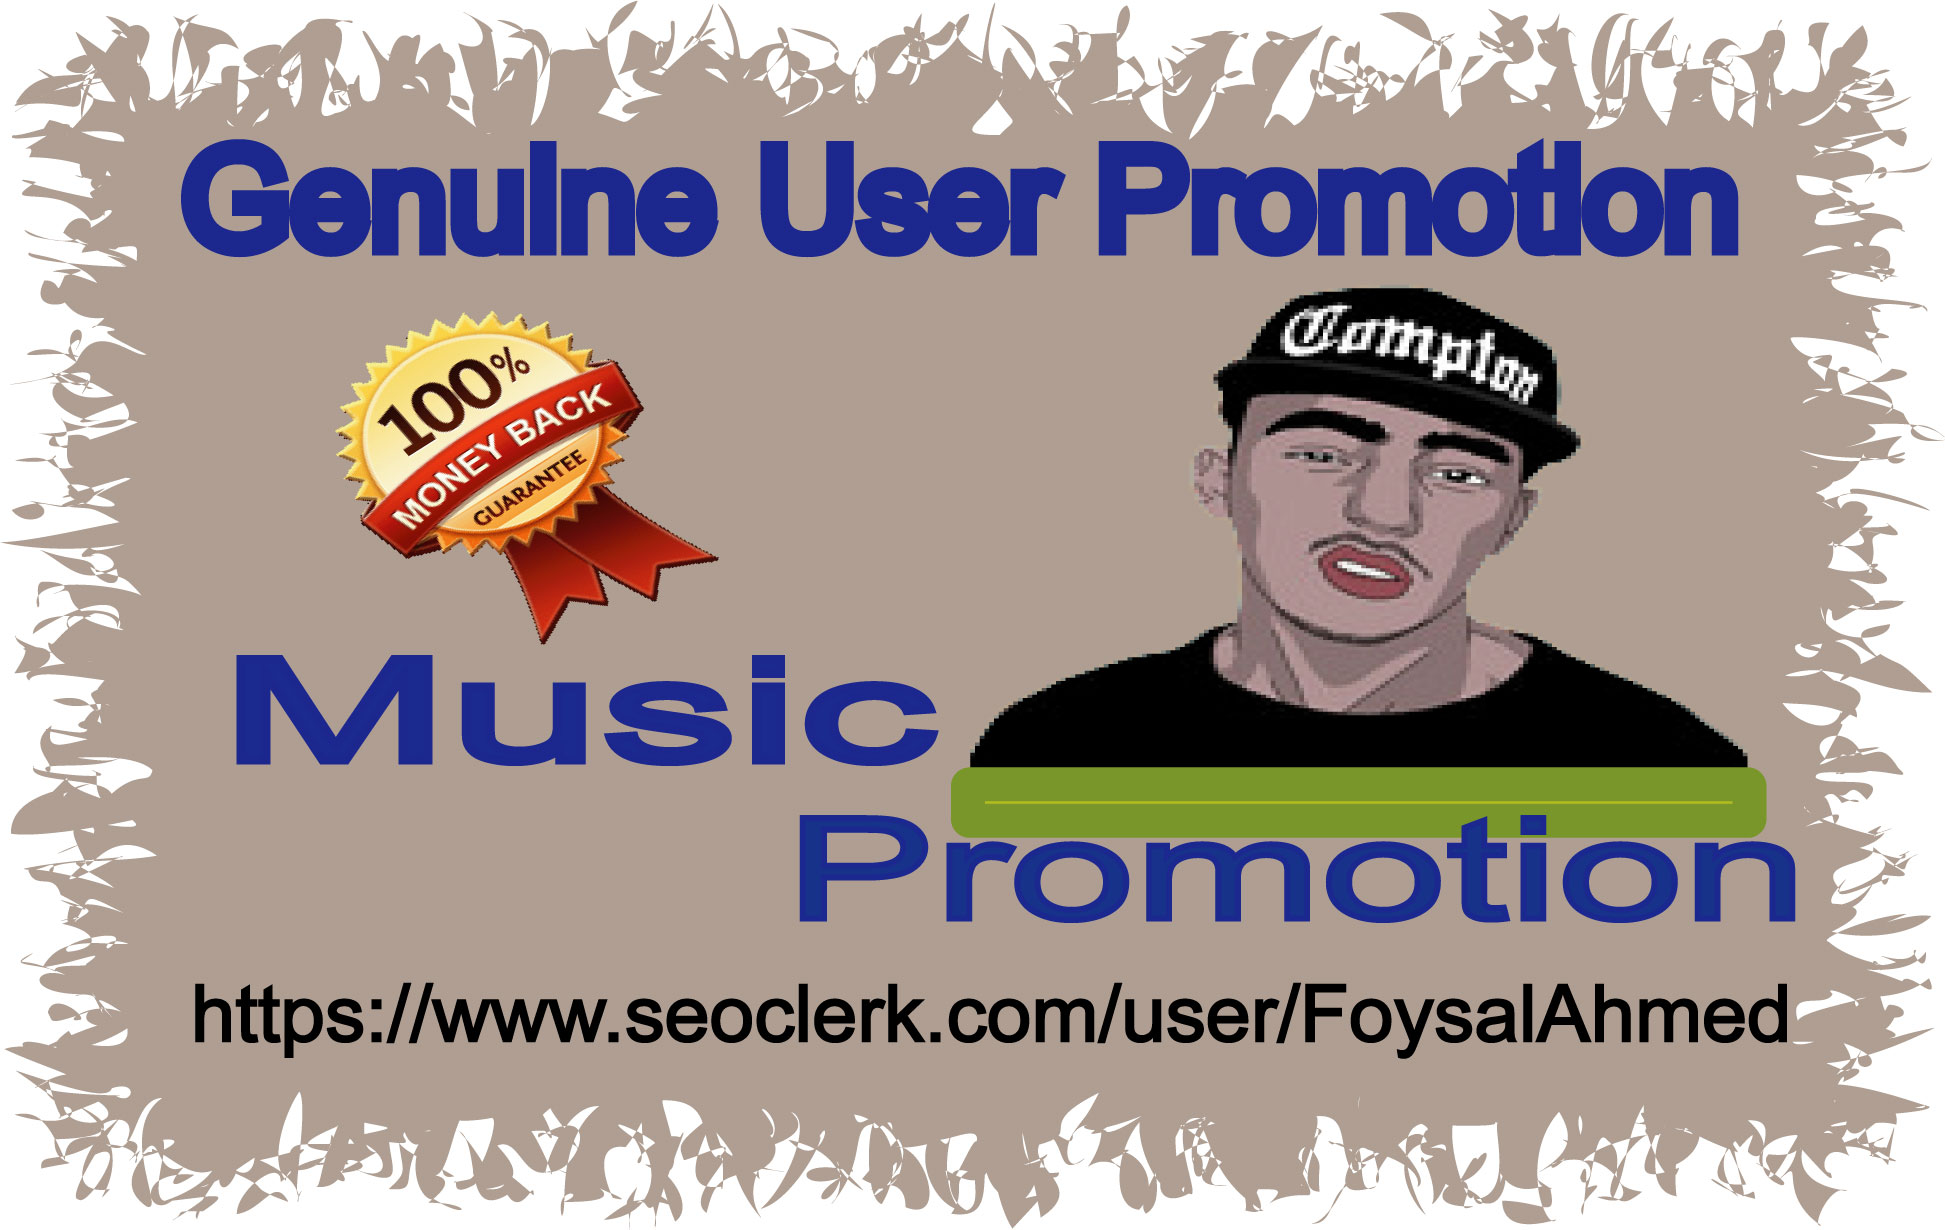 Effecttve Music Promotion 7000 Play & 155 Lke & 130 Re-post & 25 HQ C0mments